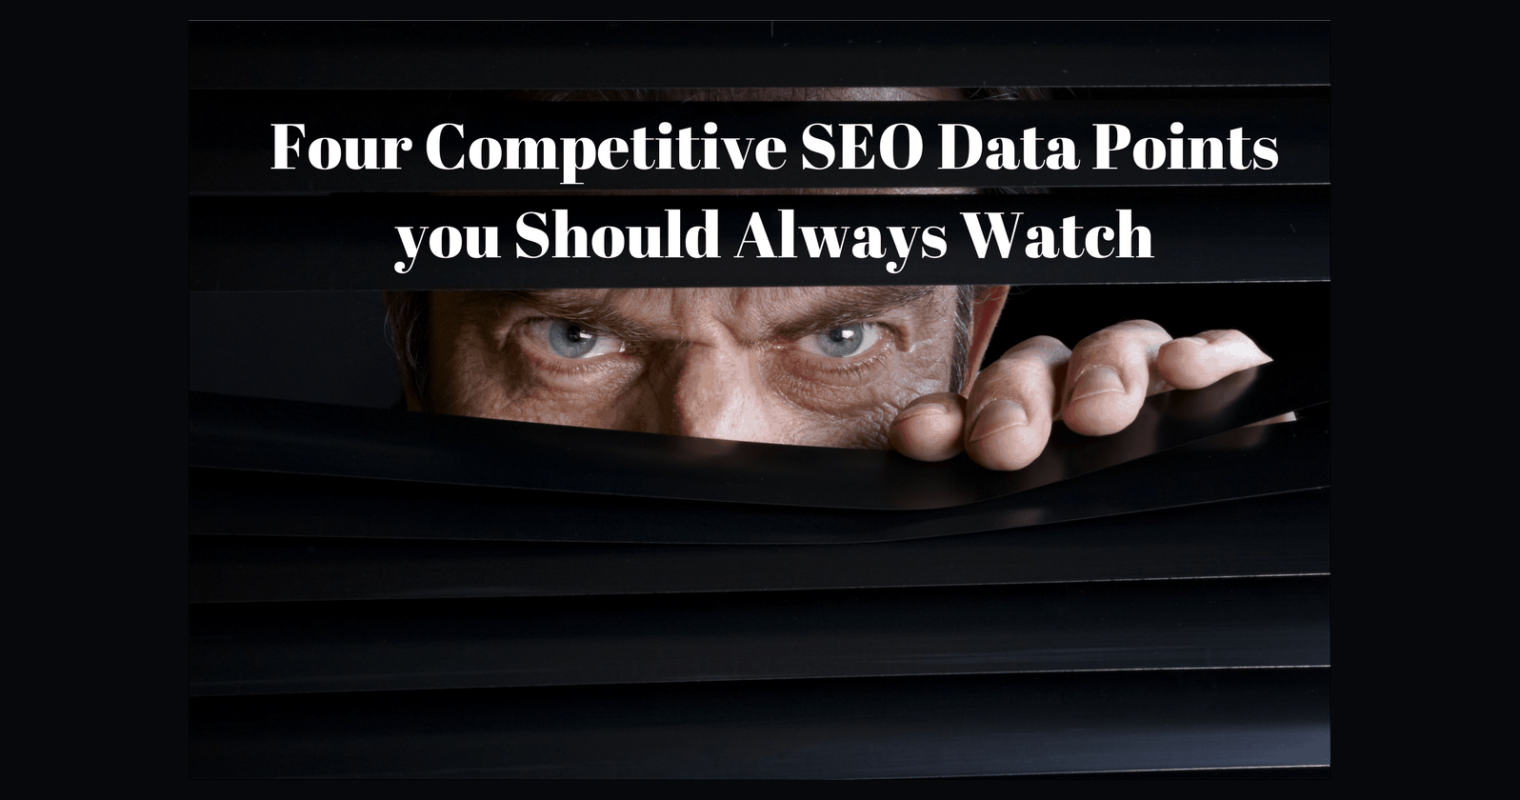 4 Important Competitive SEO Data Points You Should Always Watch